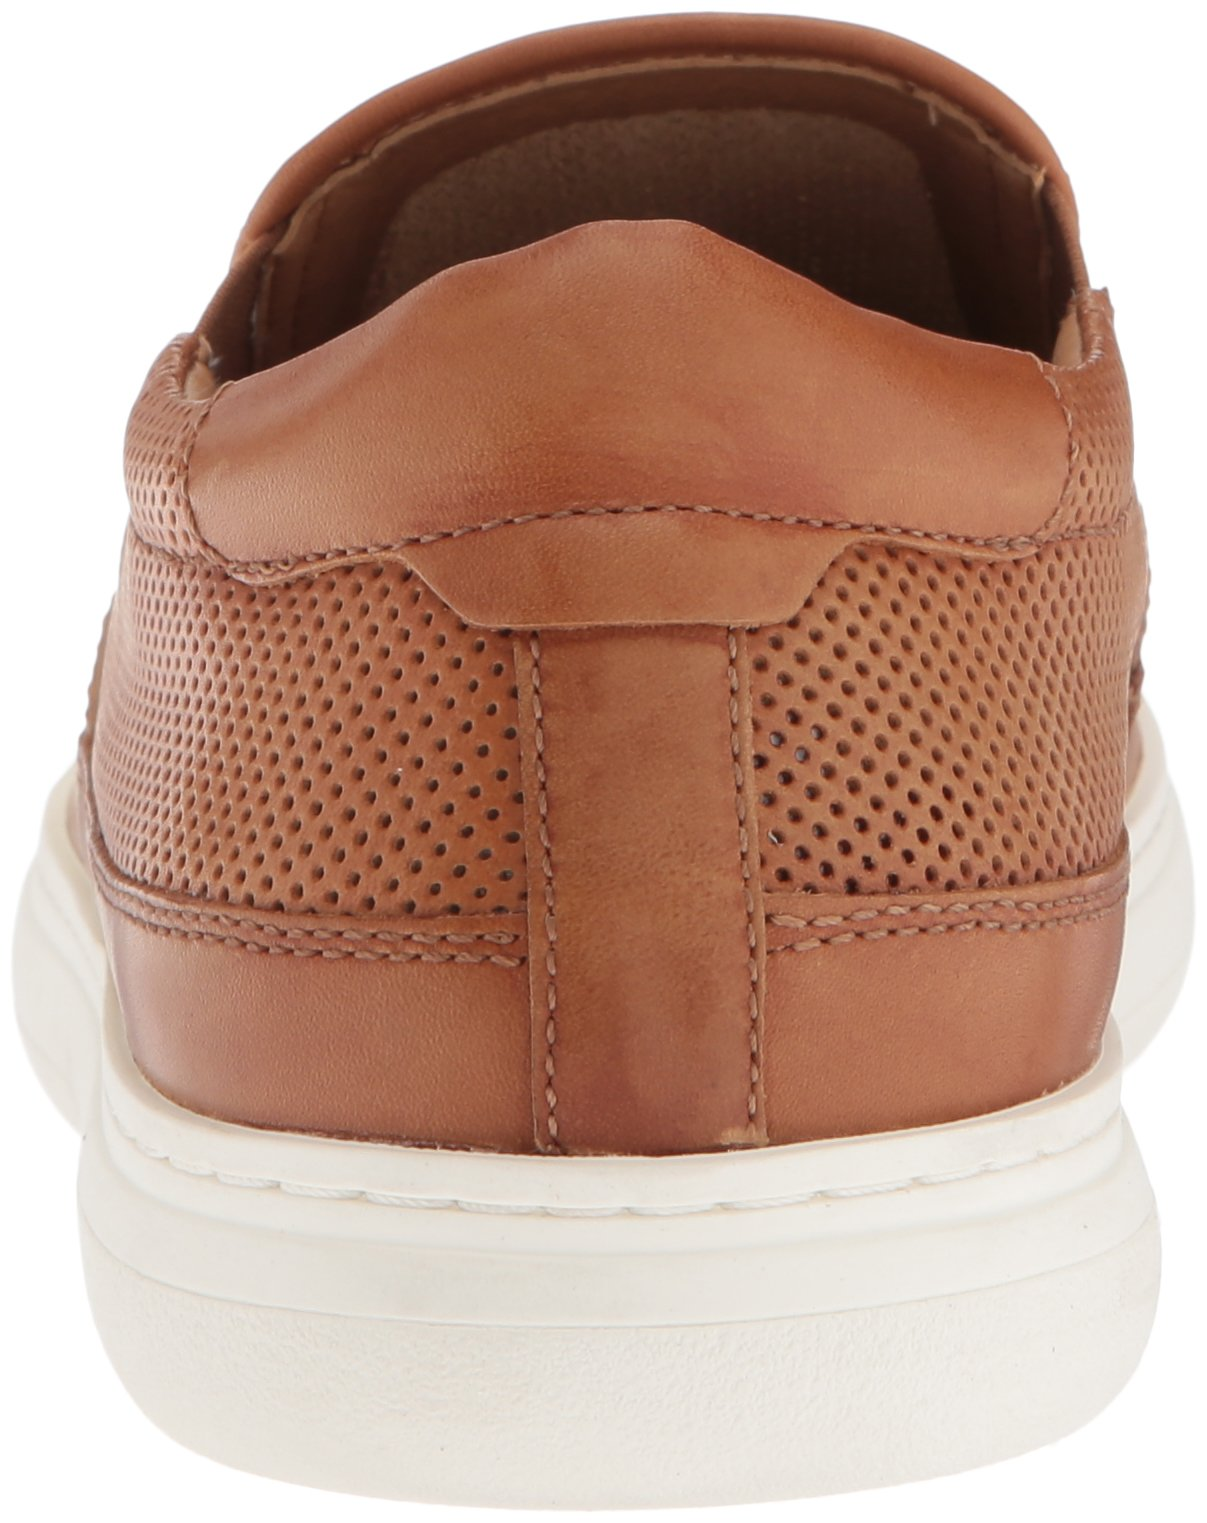 Donald J Pliner Men's Corbyn Sneaker, Saddle, 10.5 Medium US by Donald J Pliner (Image #2)